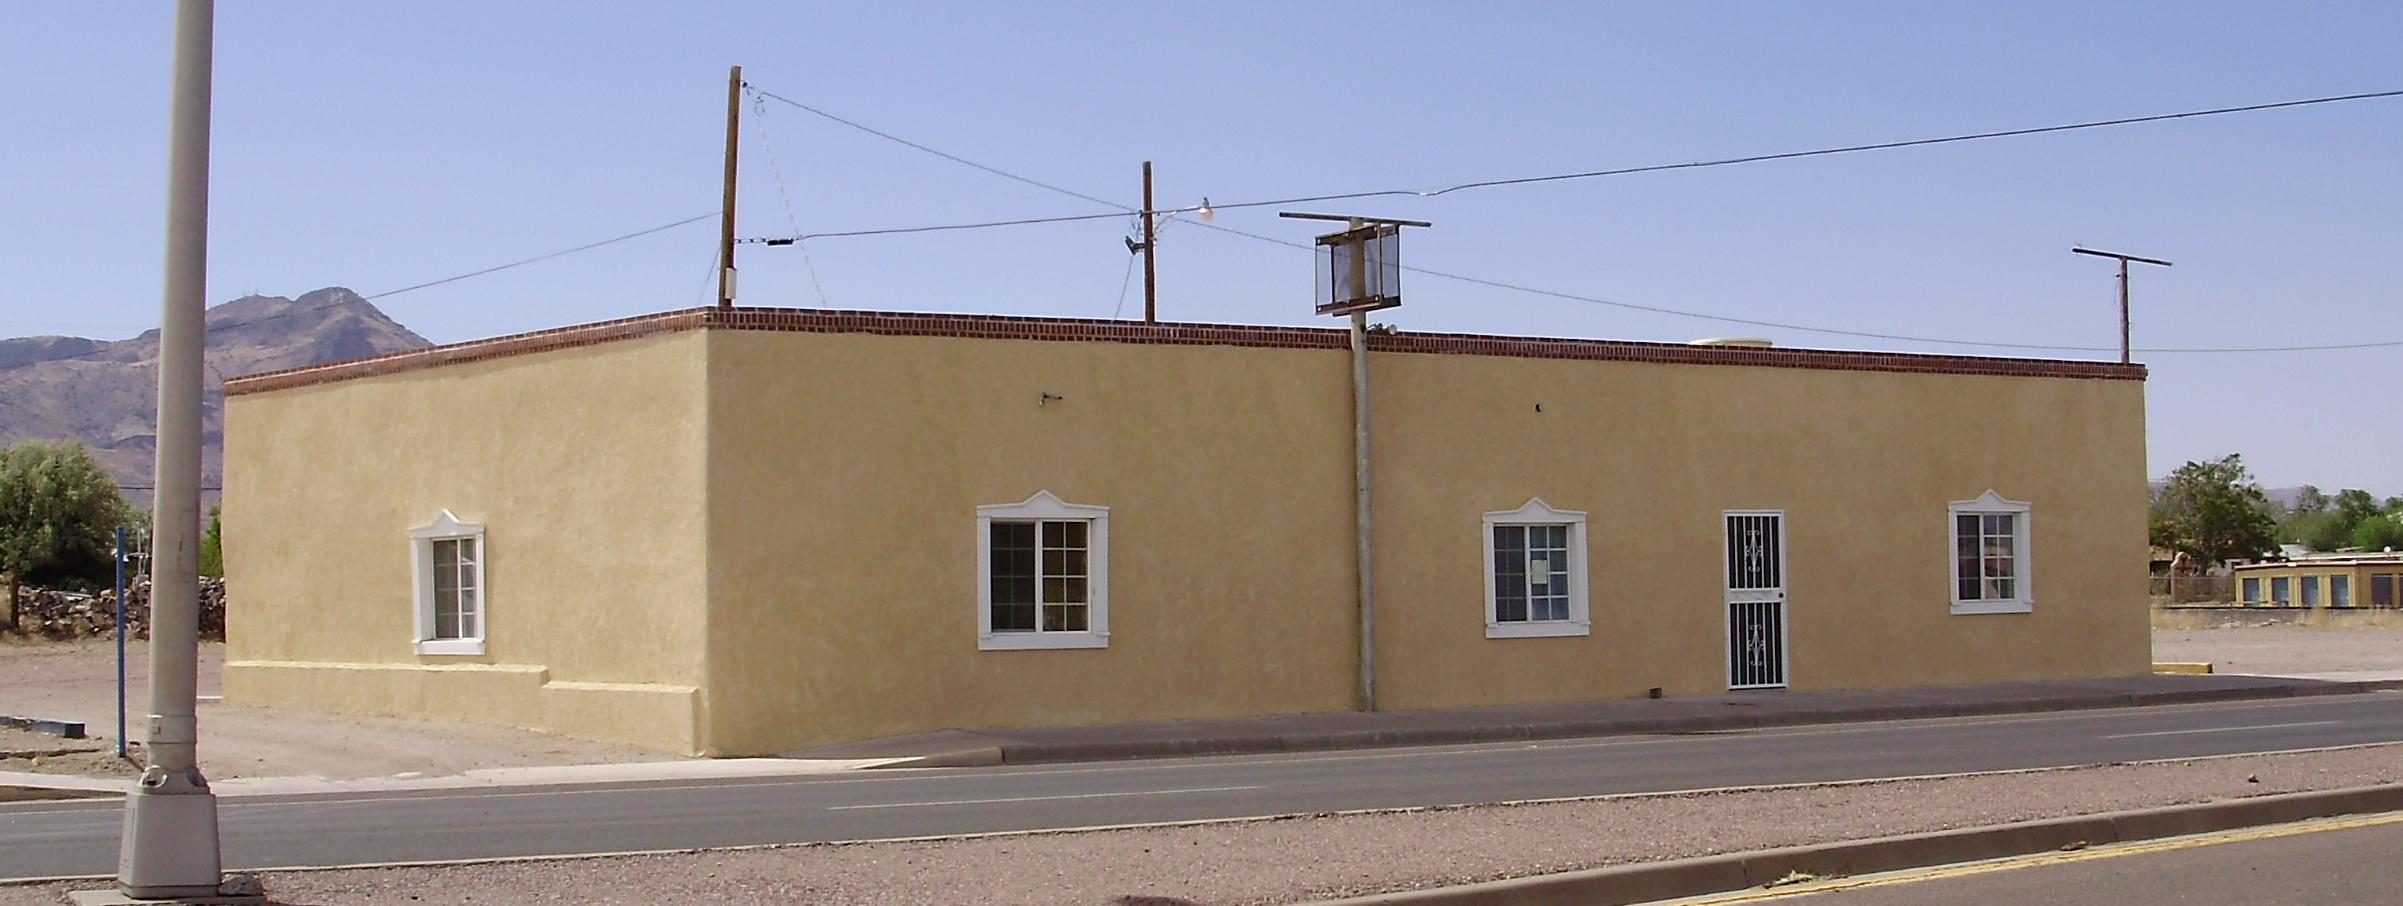 701 Old Highway 85 South Property Photo - Socorro, NM real estate listing